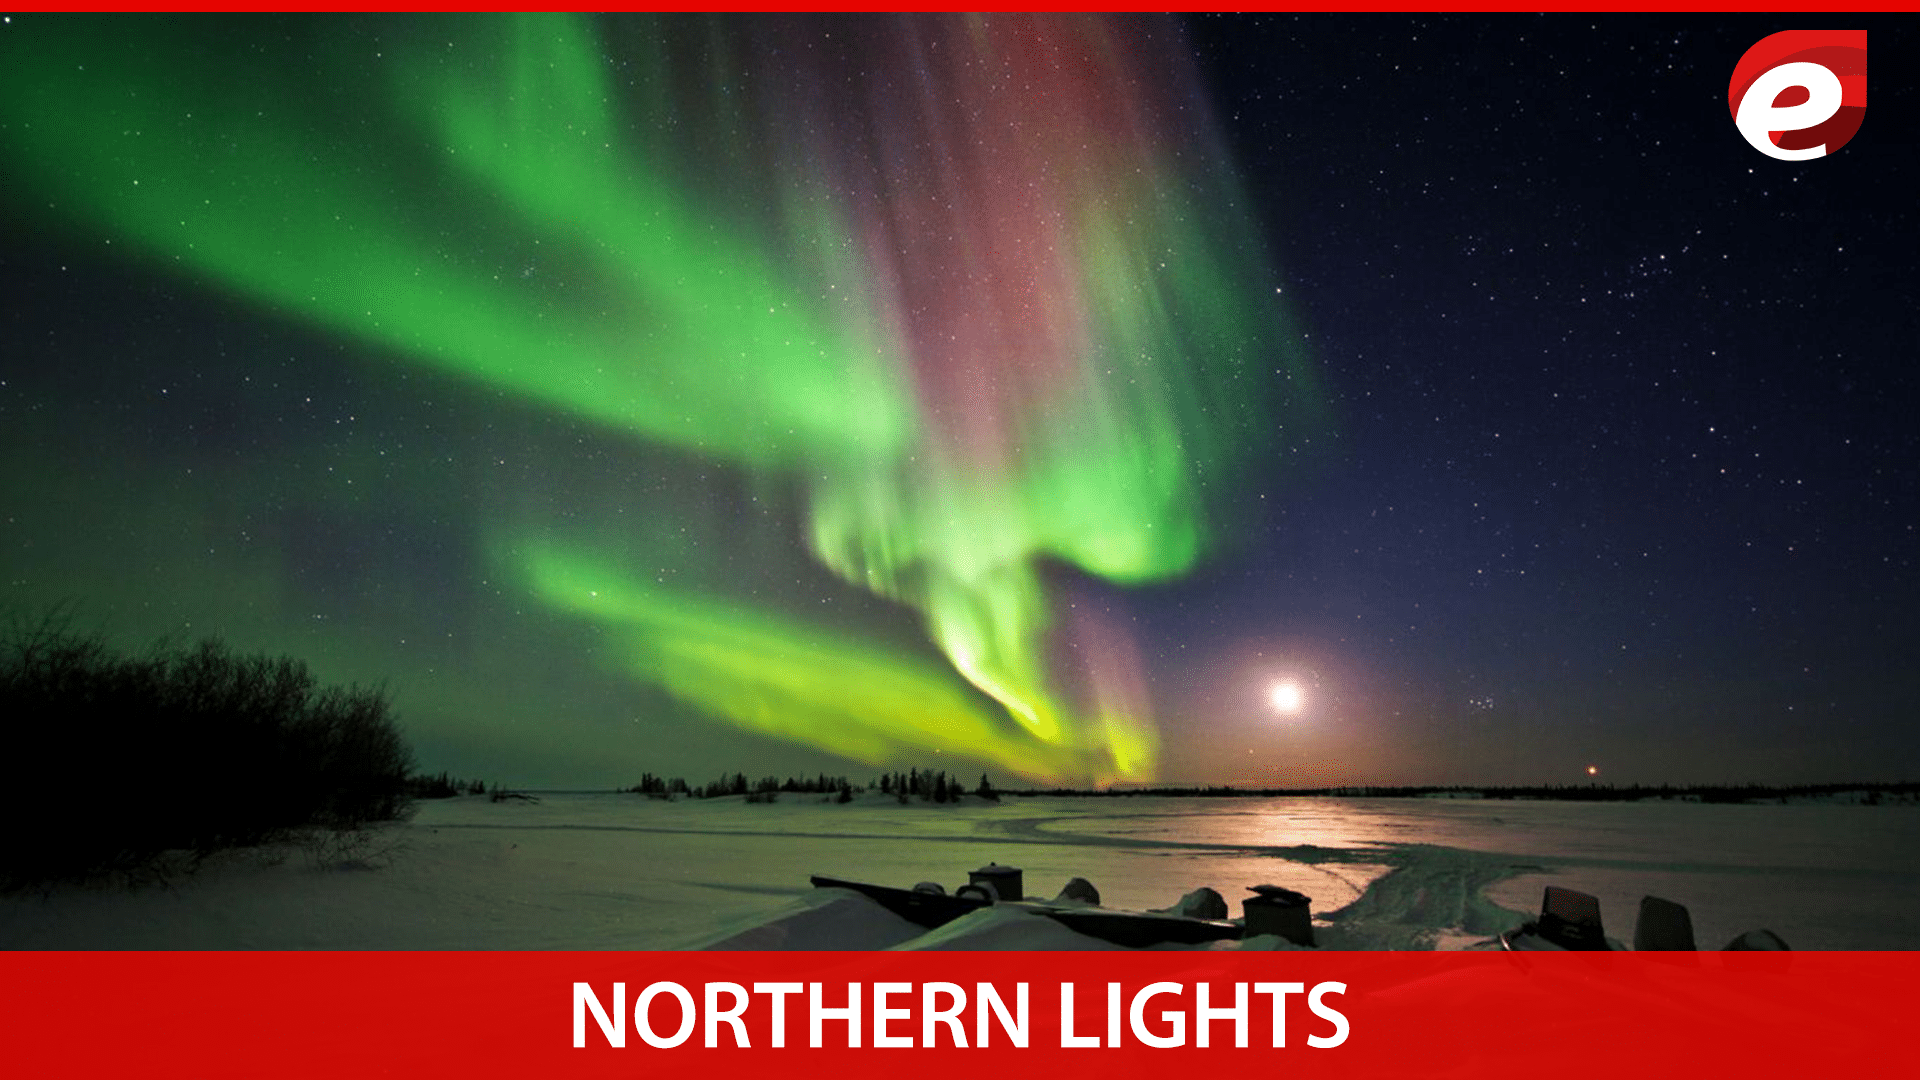 northern lights- colorful things in nature